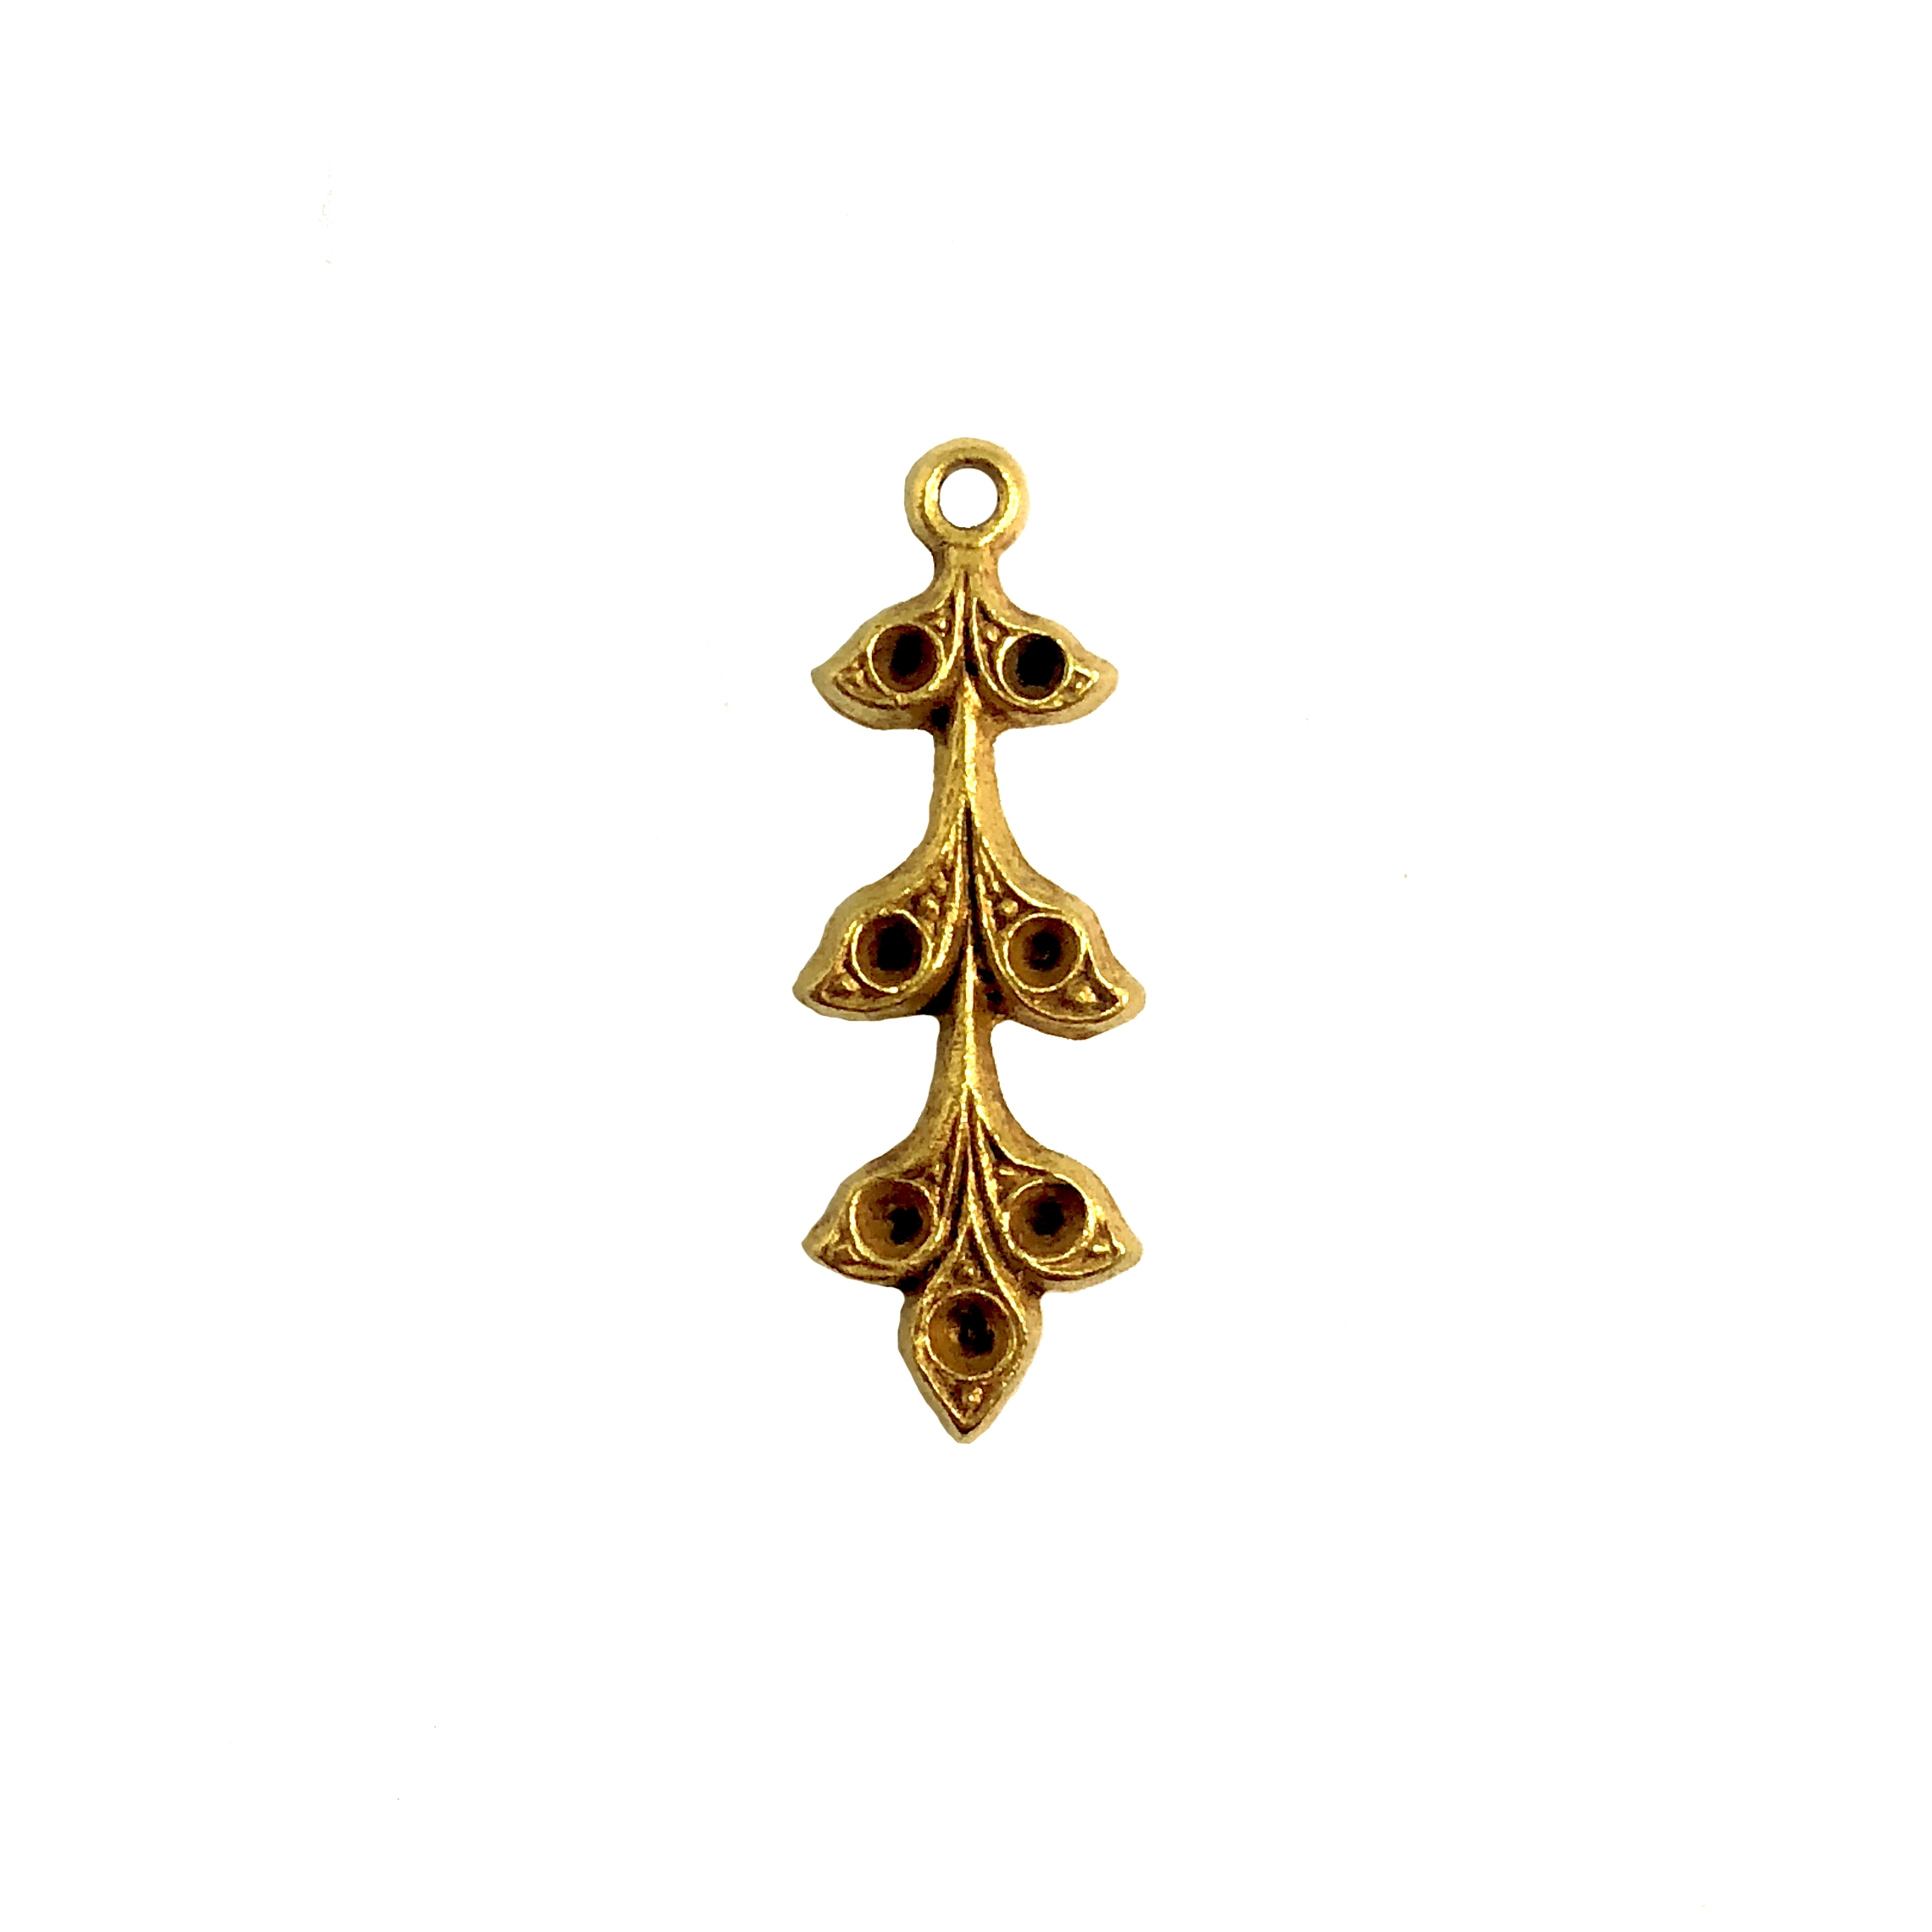 brass leaves, brass flowers, leaf sprig, 08494, classic gold, jewelry supplies, brass jewelry parts, vintage supplies, vintage jewelry, US made, nickel free, B'sue Boutiques, hanging hole, charm, leaf charm, pendant, leaf pendant, stone sets, earring drop